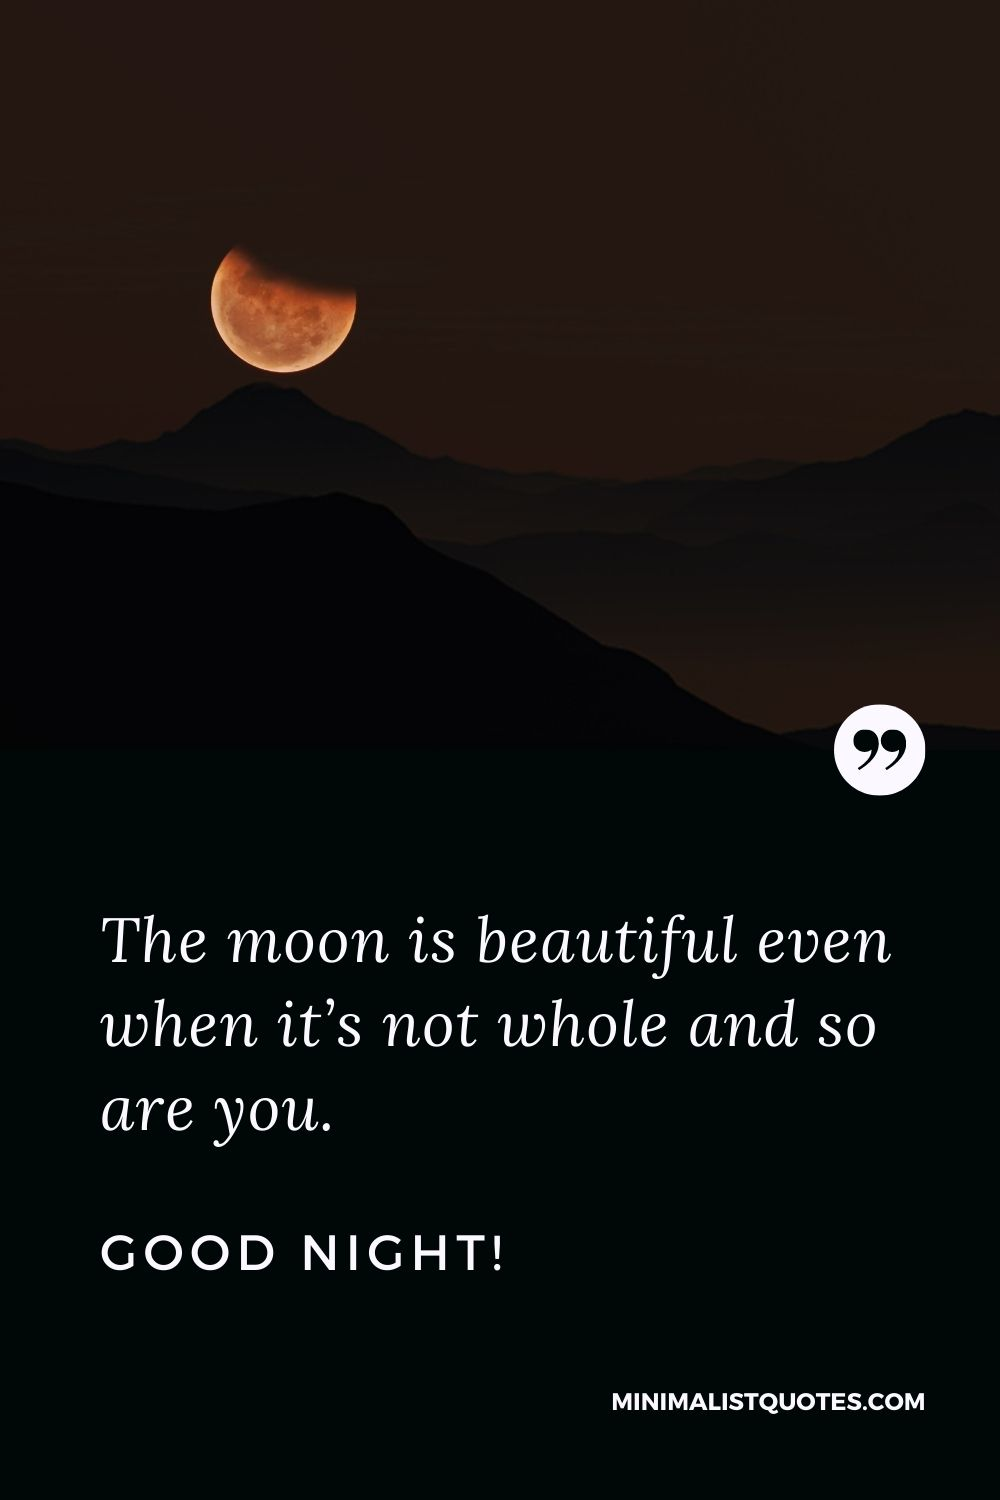 Night Quote, Wish & Message With Image: The moon is beautiful even when it's not whole and so are you. Good Night!